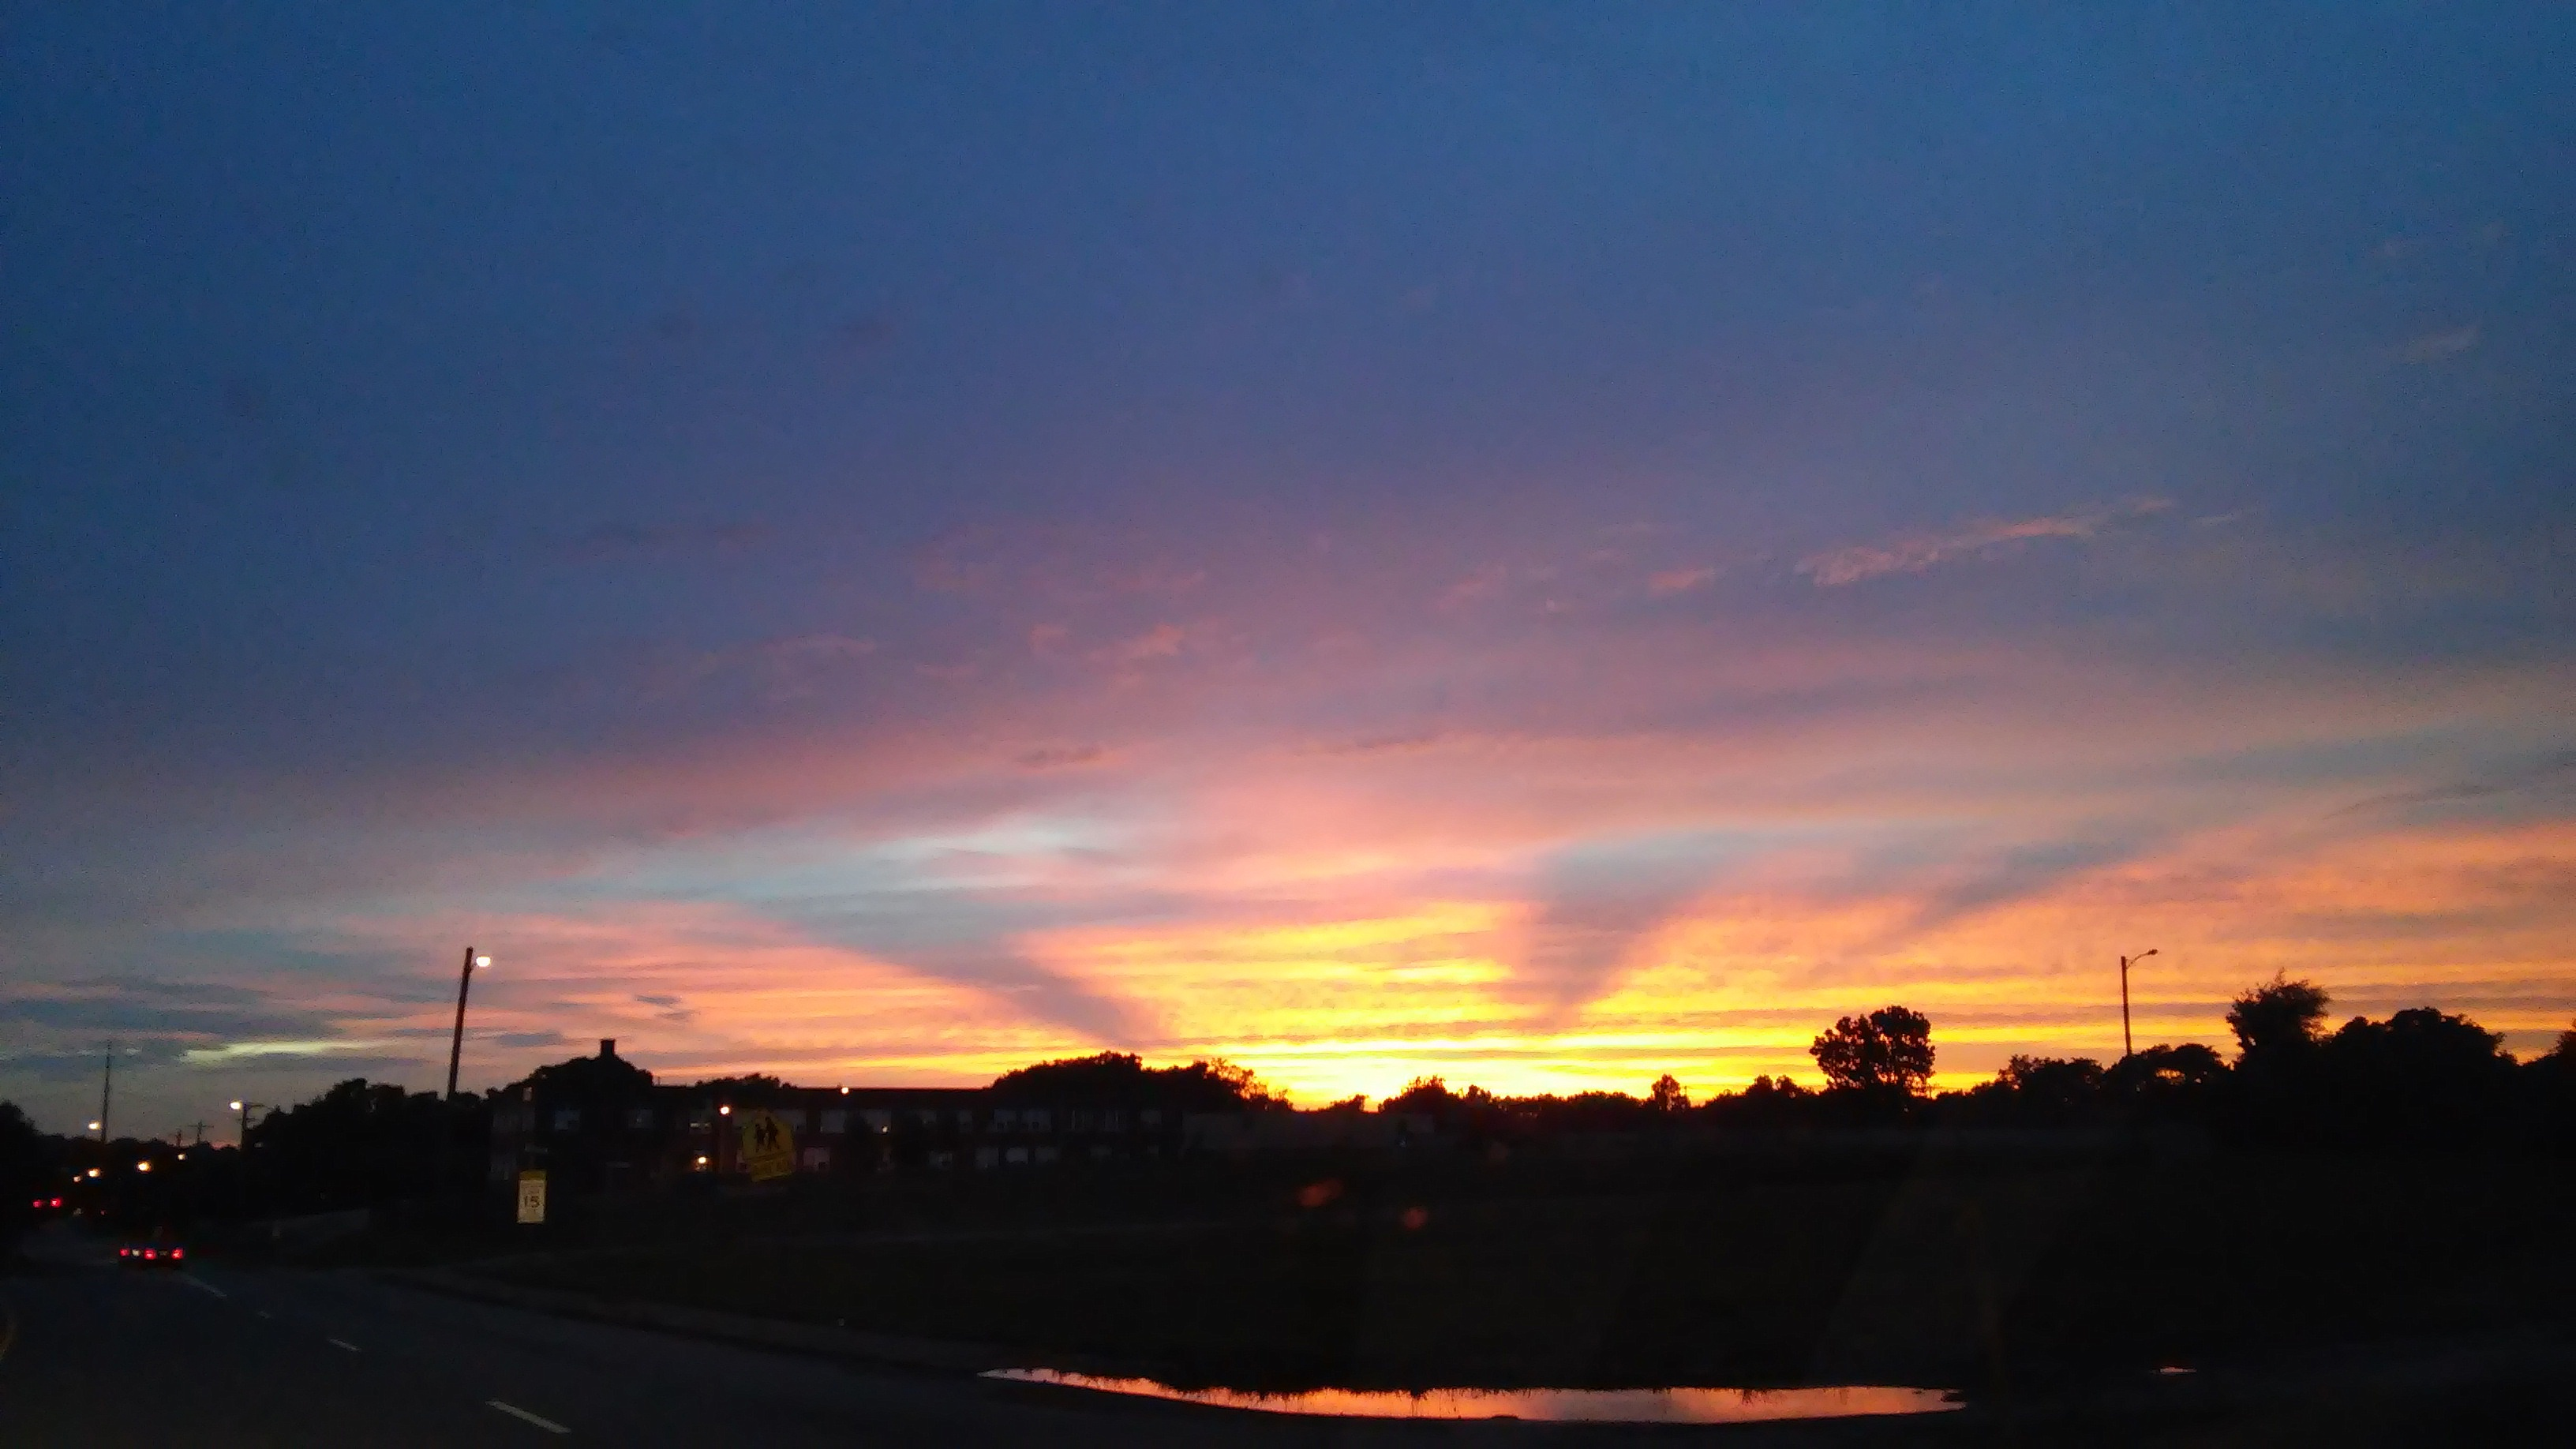 Sunset of Hope, Healing and Heaven - May 27th, 2015 1